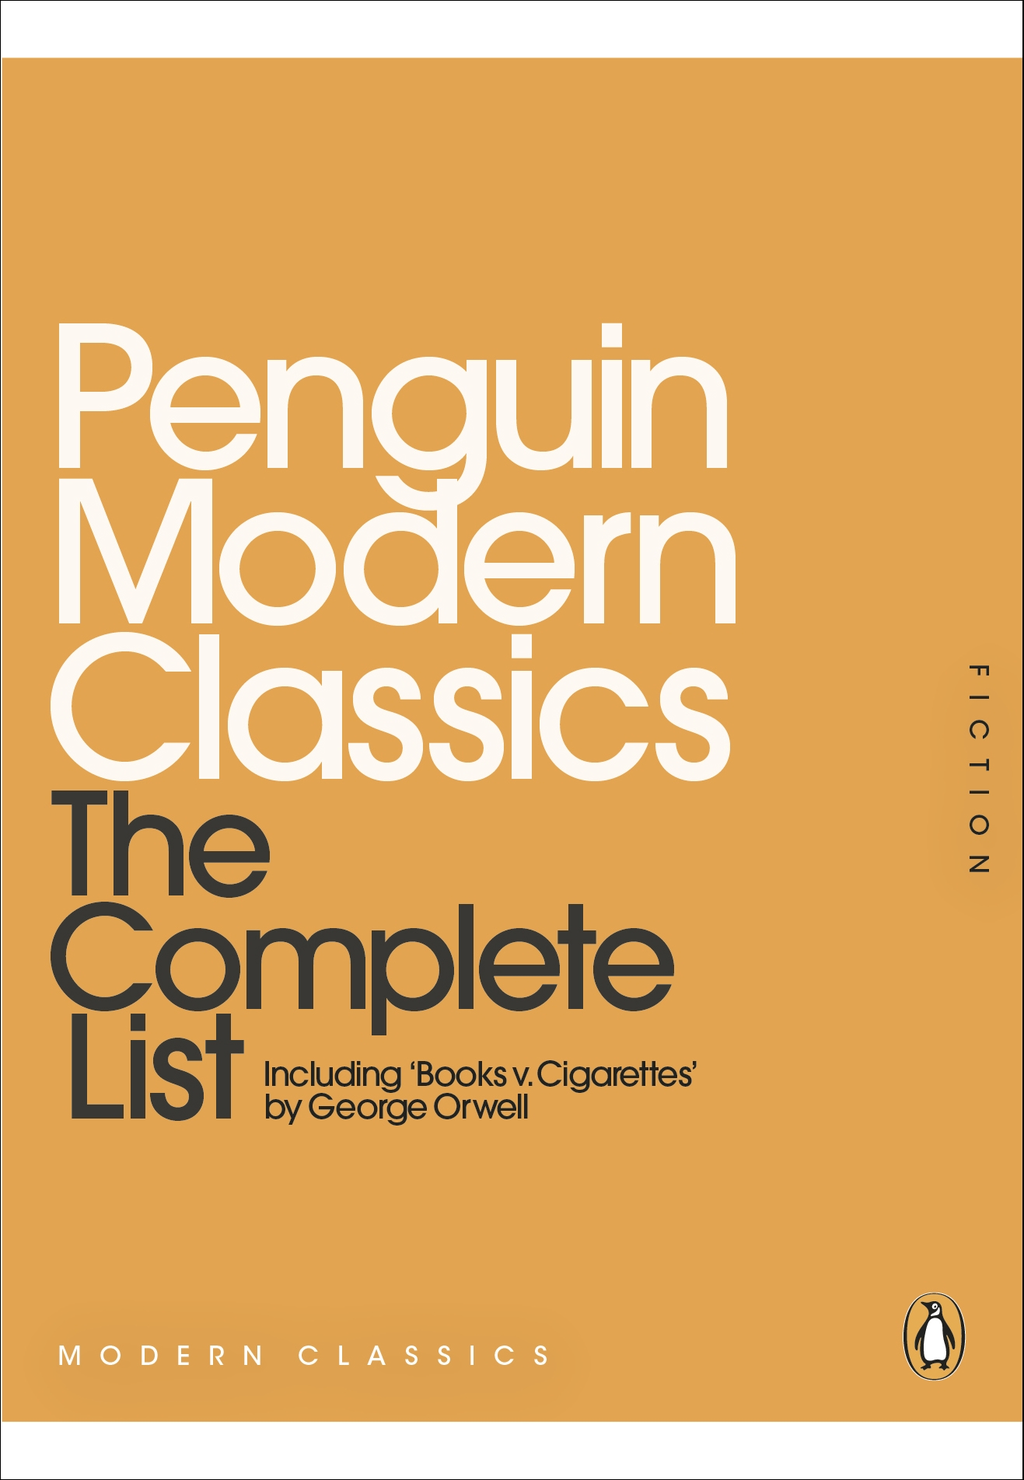 Penguin Modern Classics: The Complete List The Complete List